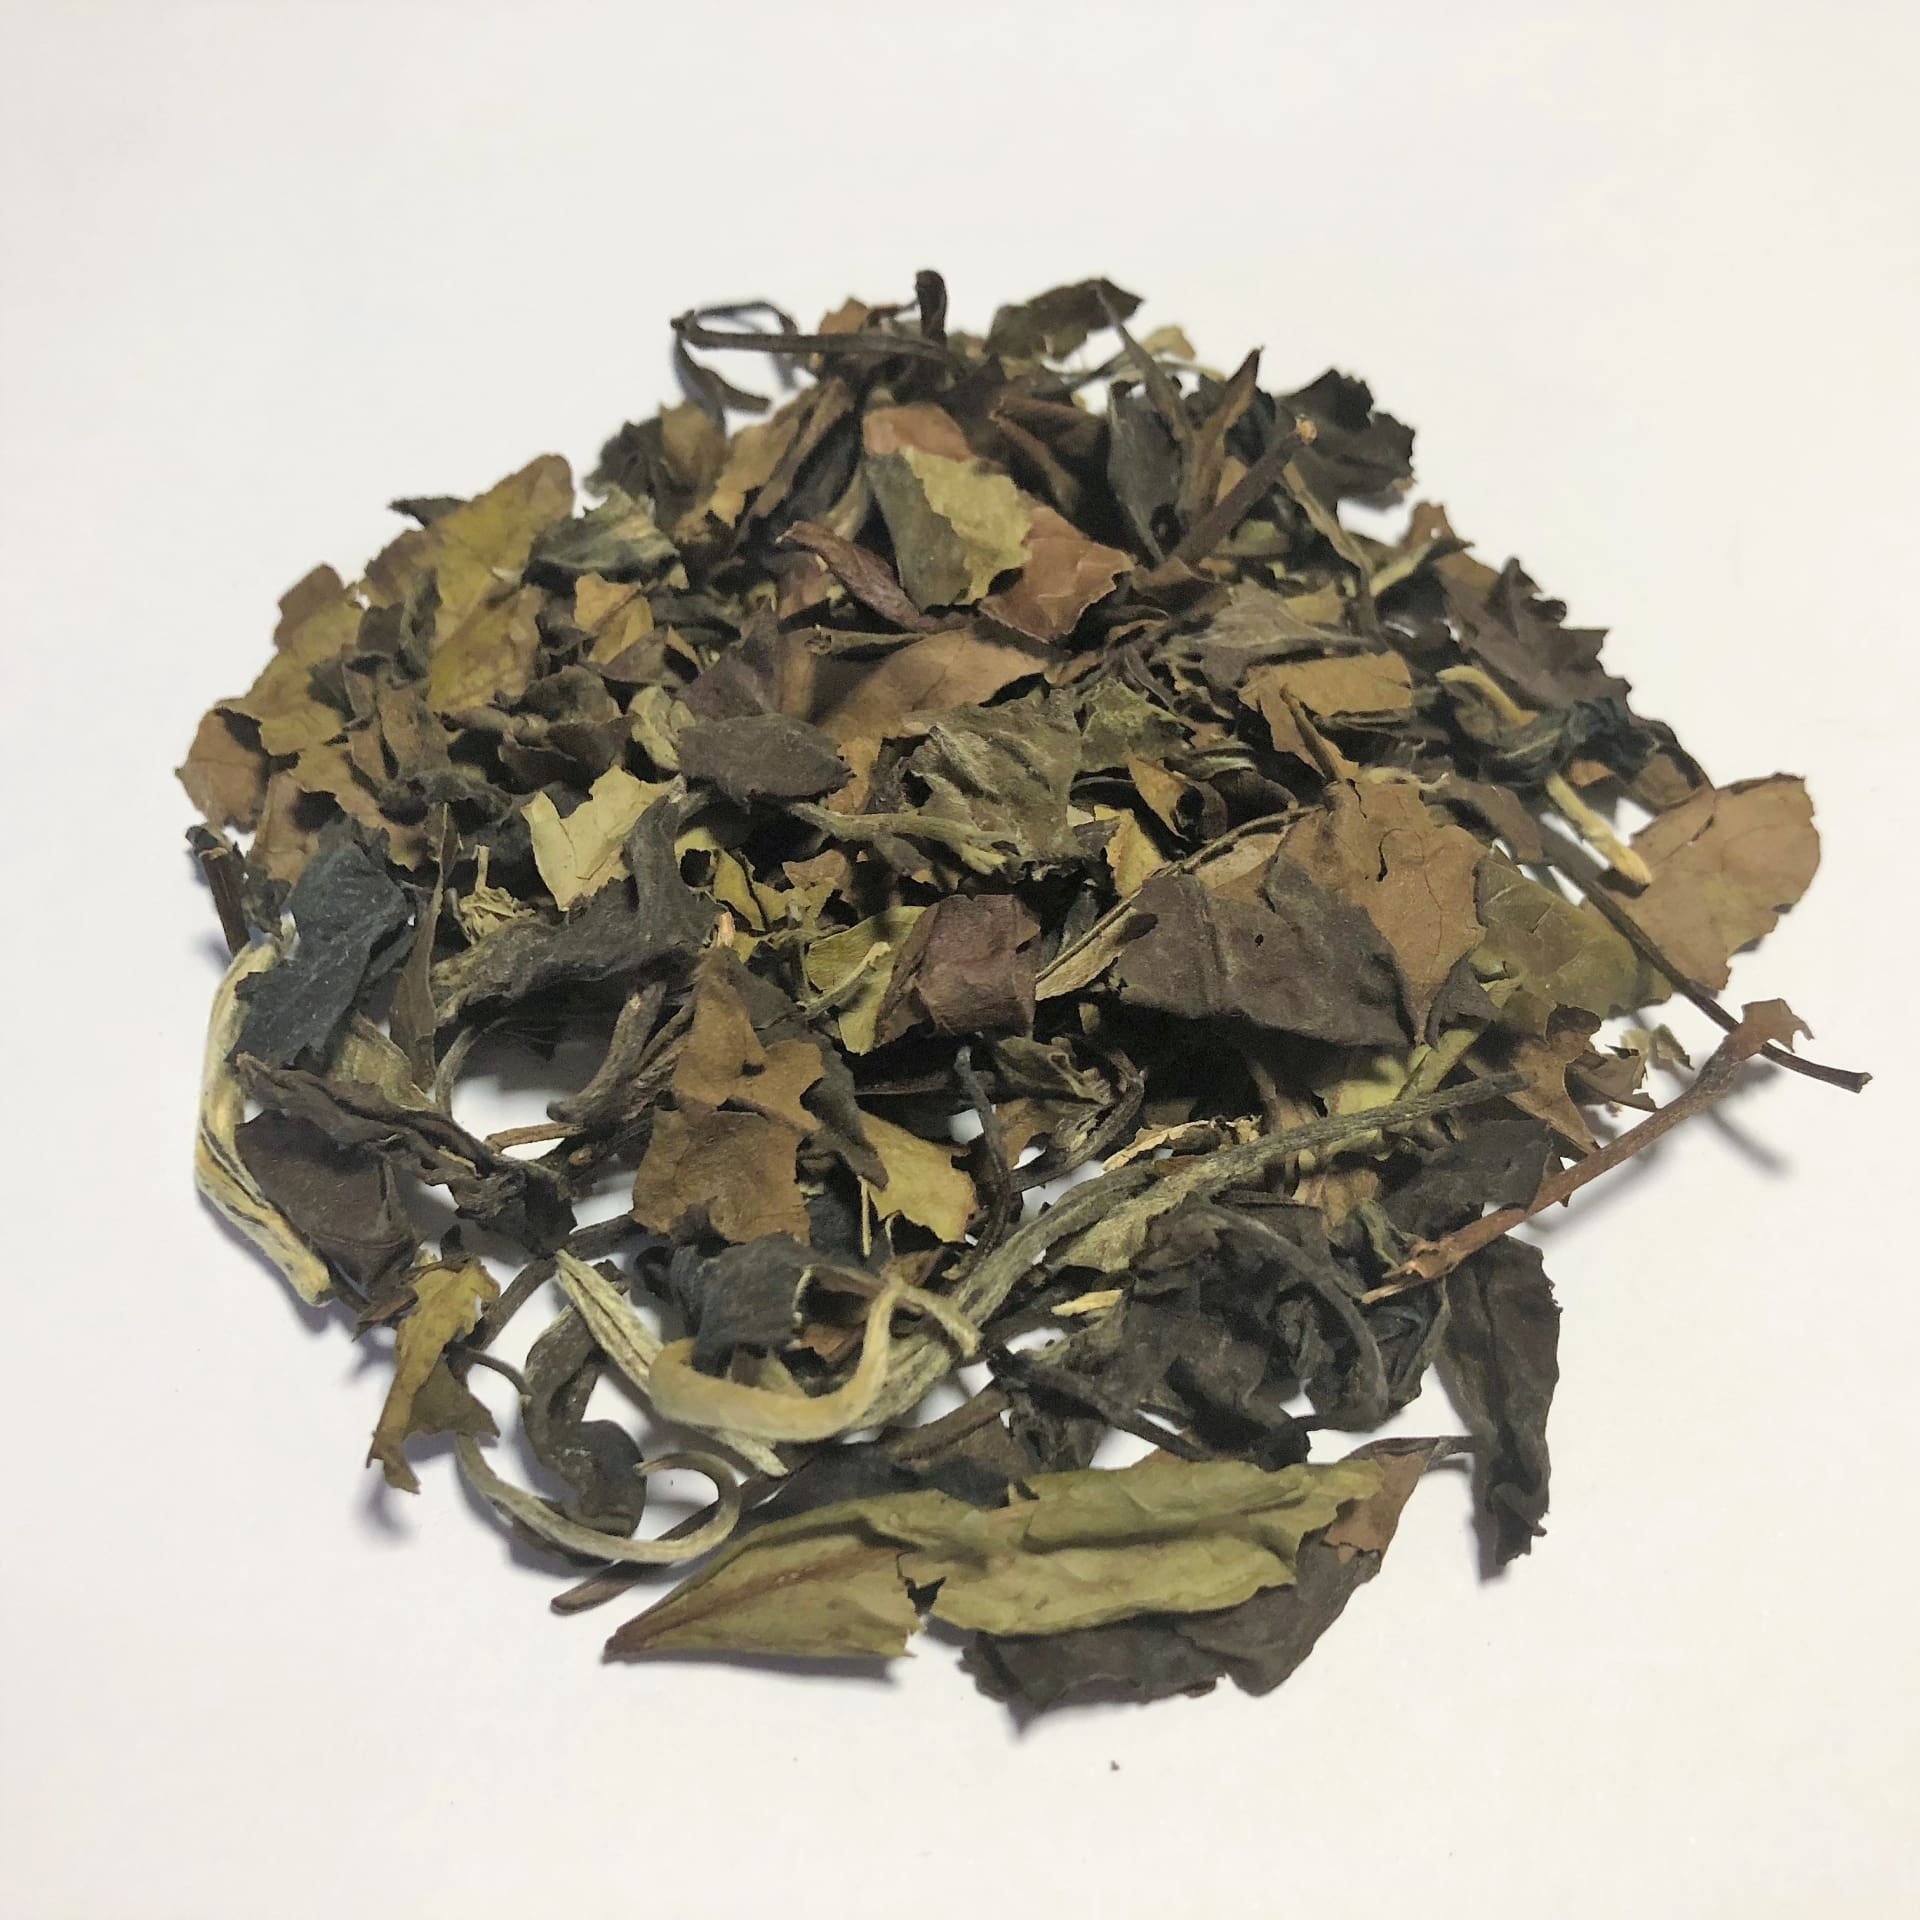 White French Mint - Loose Leaf Tea